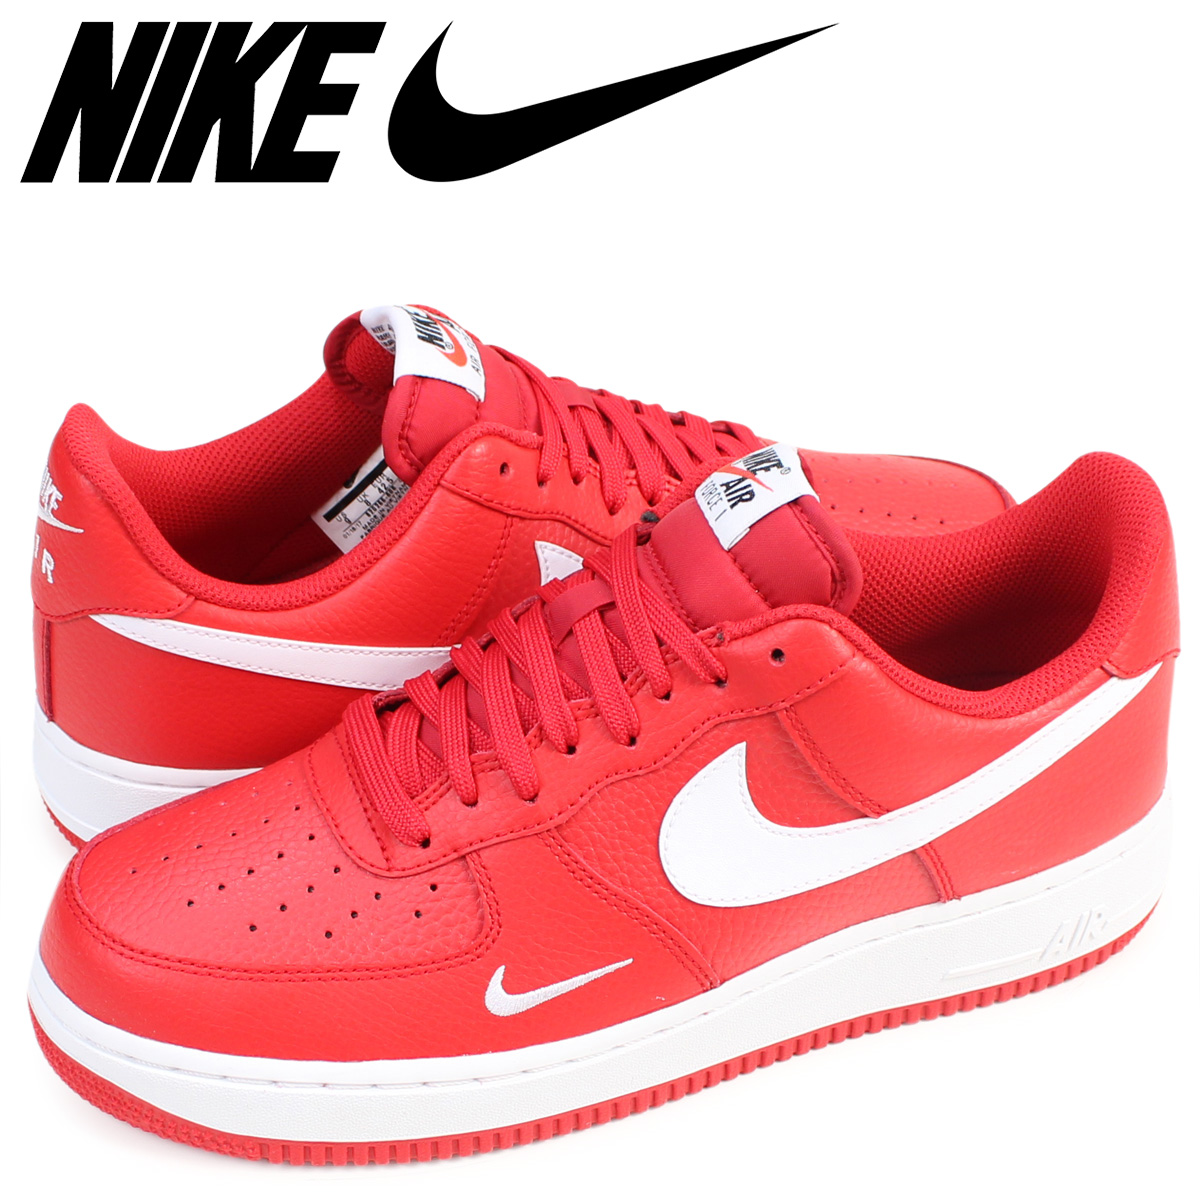 huge selection of 180fb 5b3a3 Sugar Online Shop Nike NIKE air force 1 sneakers AIR FORCE 1 LOW 07 mens  low 820,266-606 shoes red the 615 additional arrival  Rakuten Global  Market